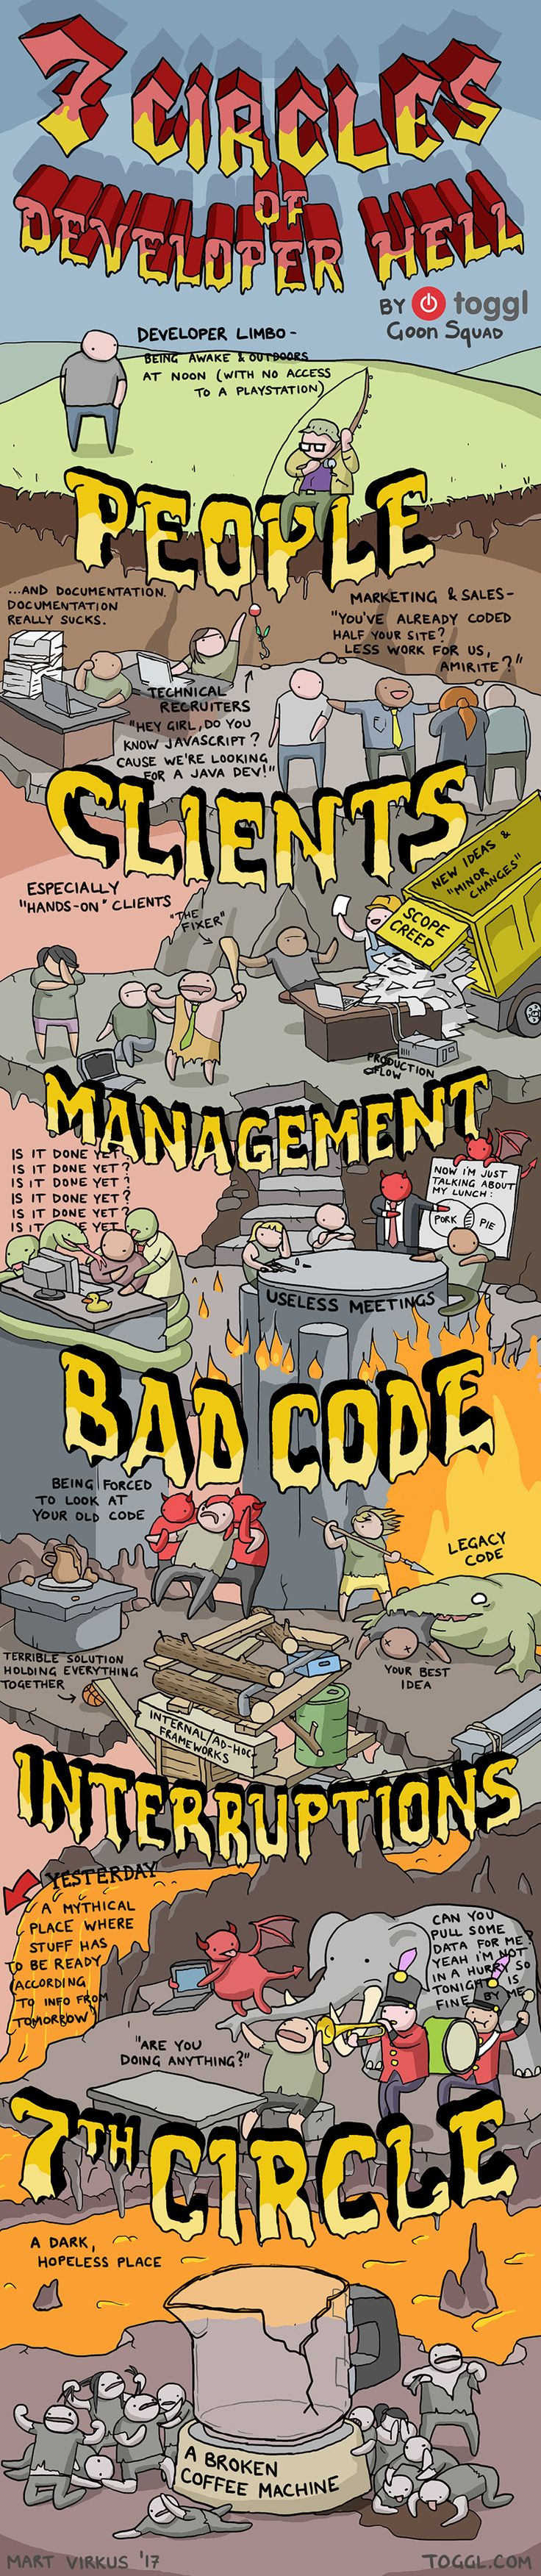 7 Circles of Developer Hell - A Toggl Infographic